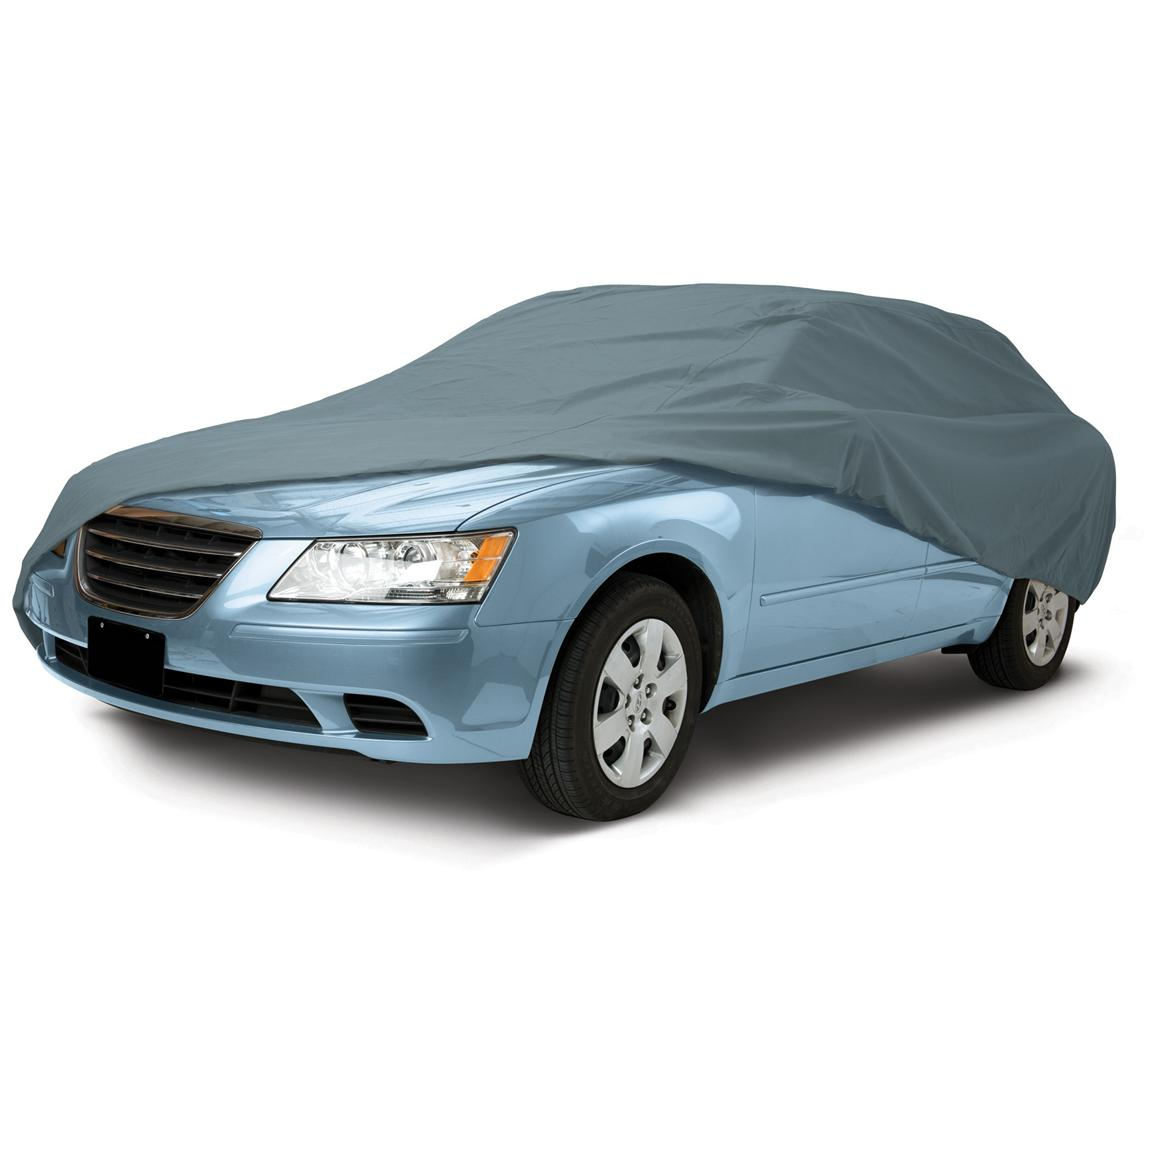 Classic Accessories™ OverDrive PolyPRO™ 1 Car Cover, Mid Size